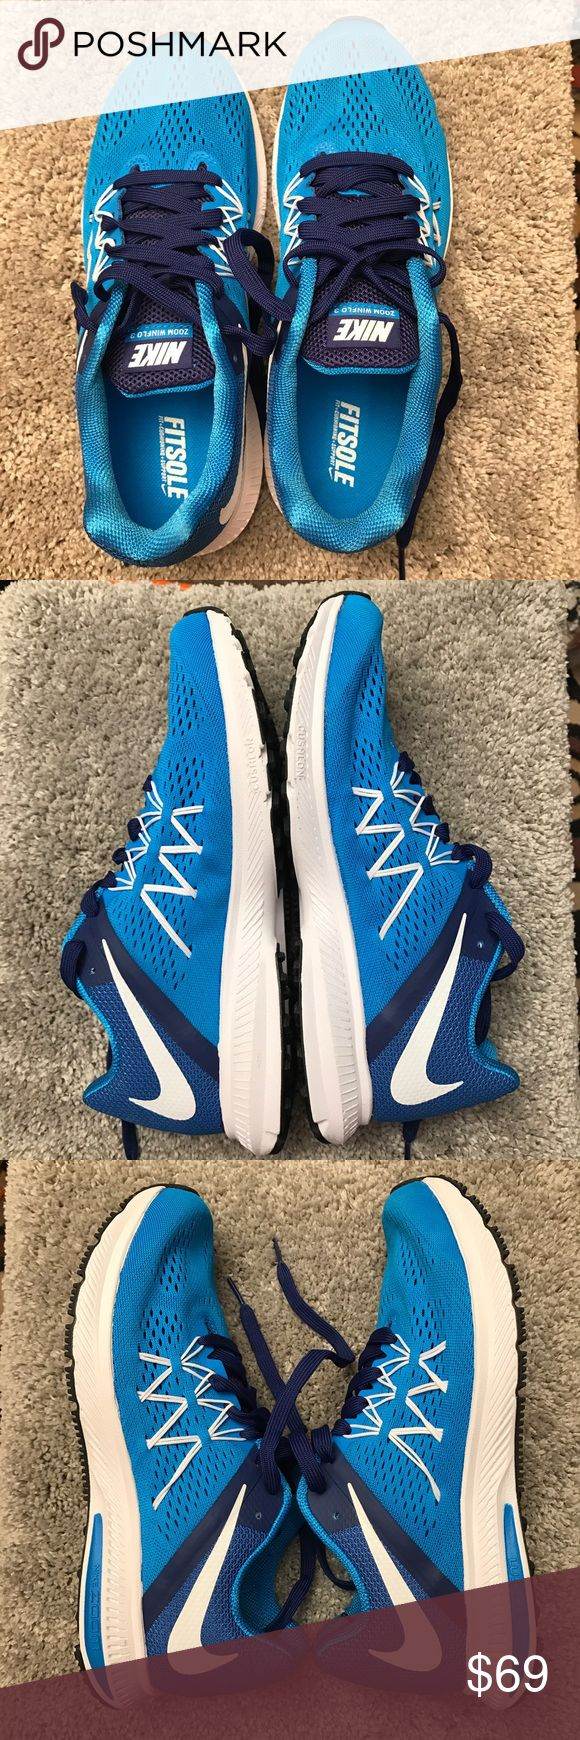 Nike Zoom Winflo 3 Shoes Nike Zoom Winflo 3 shoes. Brand new. Never worn. Size 8.5 Nike Shoes Athletic Shoes